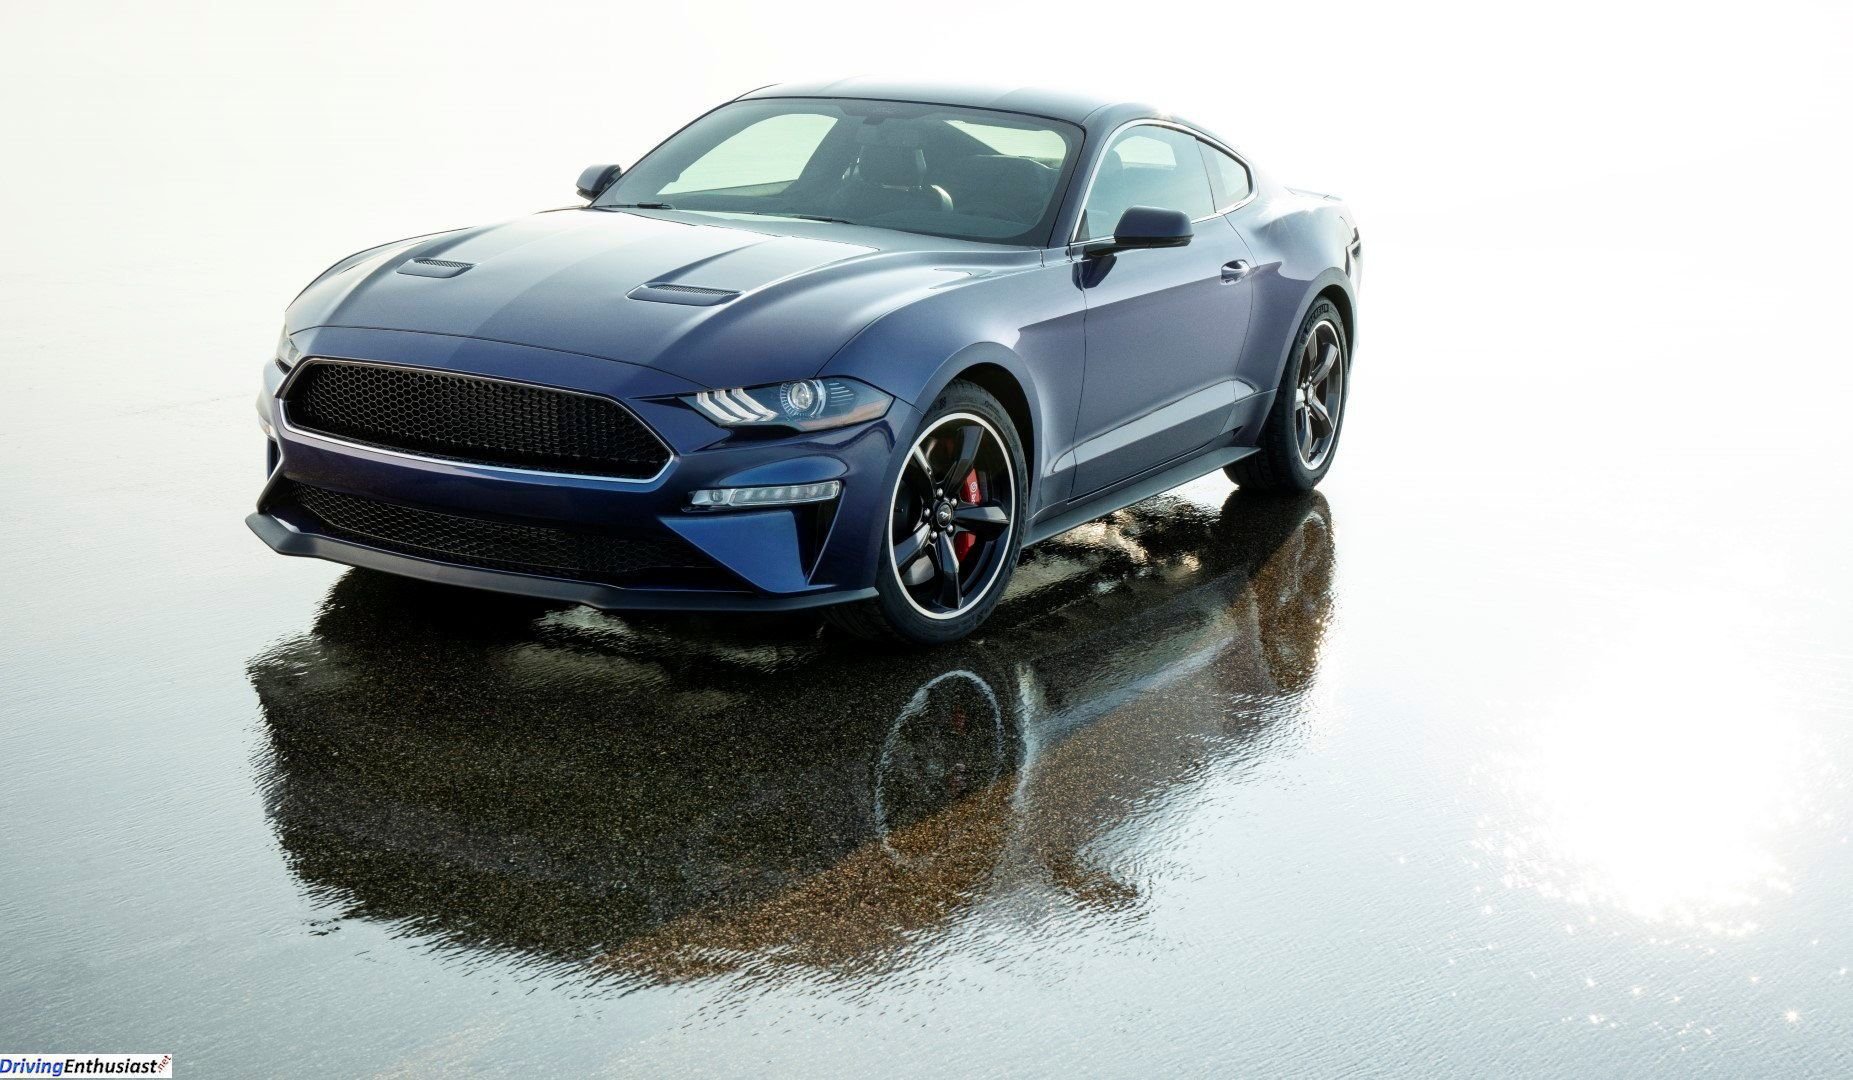 2019 ford mustang bullitt kona blue with unique gray wheels and blue cabin stitching inside a one off car built by ford to benefit the juvenile diabetes